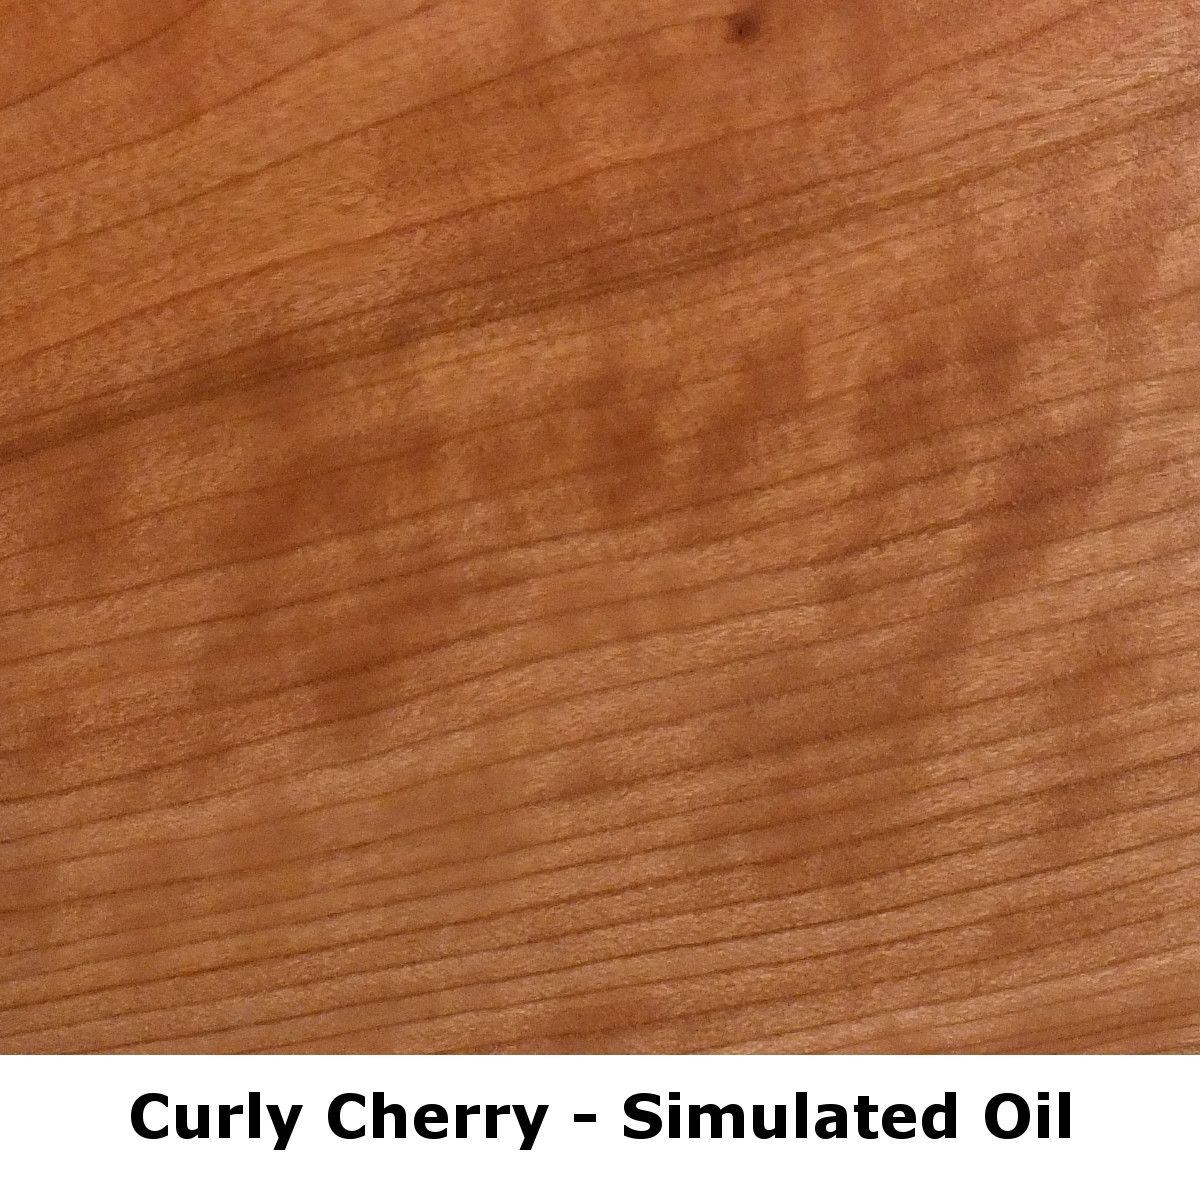 sq curly cherry 2.jpeg